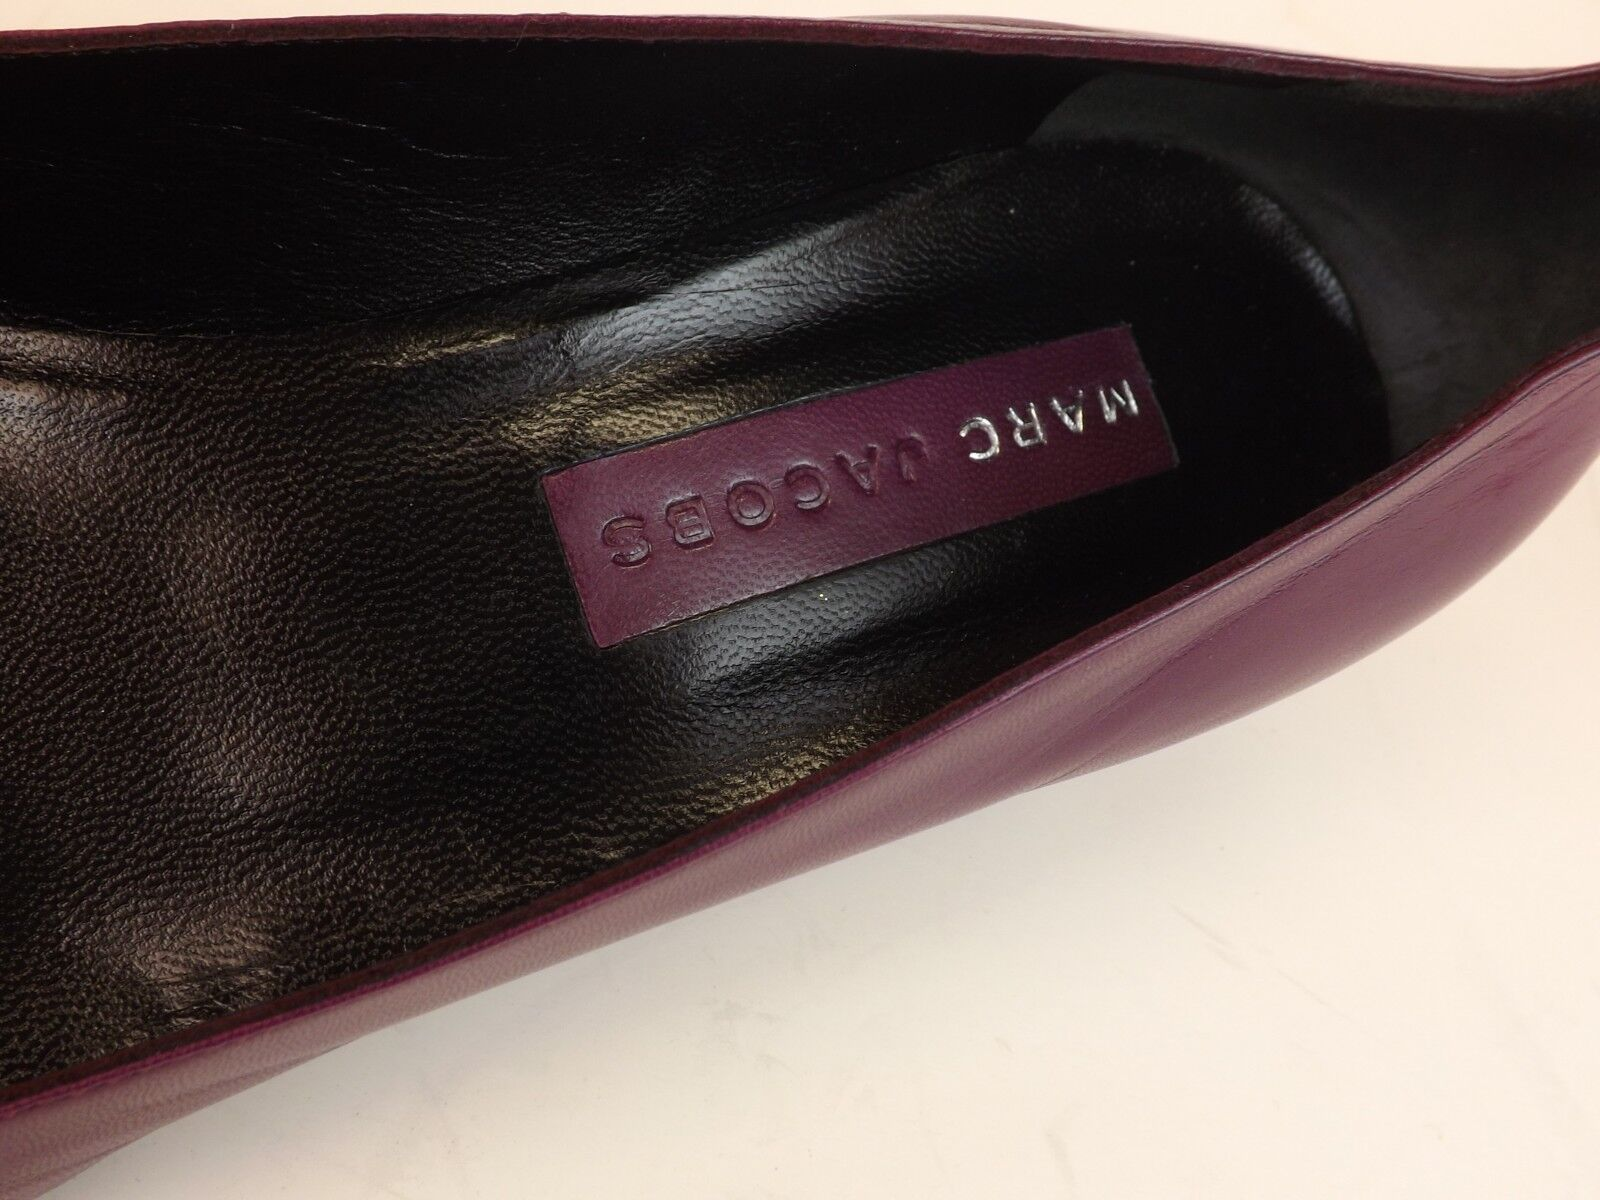 NEW MARC JACOBS PLUM LEATHER POINTED HEELS TOE BUTTONS KITTEN HEELS POINTED PUMPS 8 ITALY 281f10